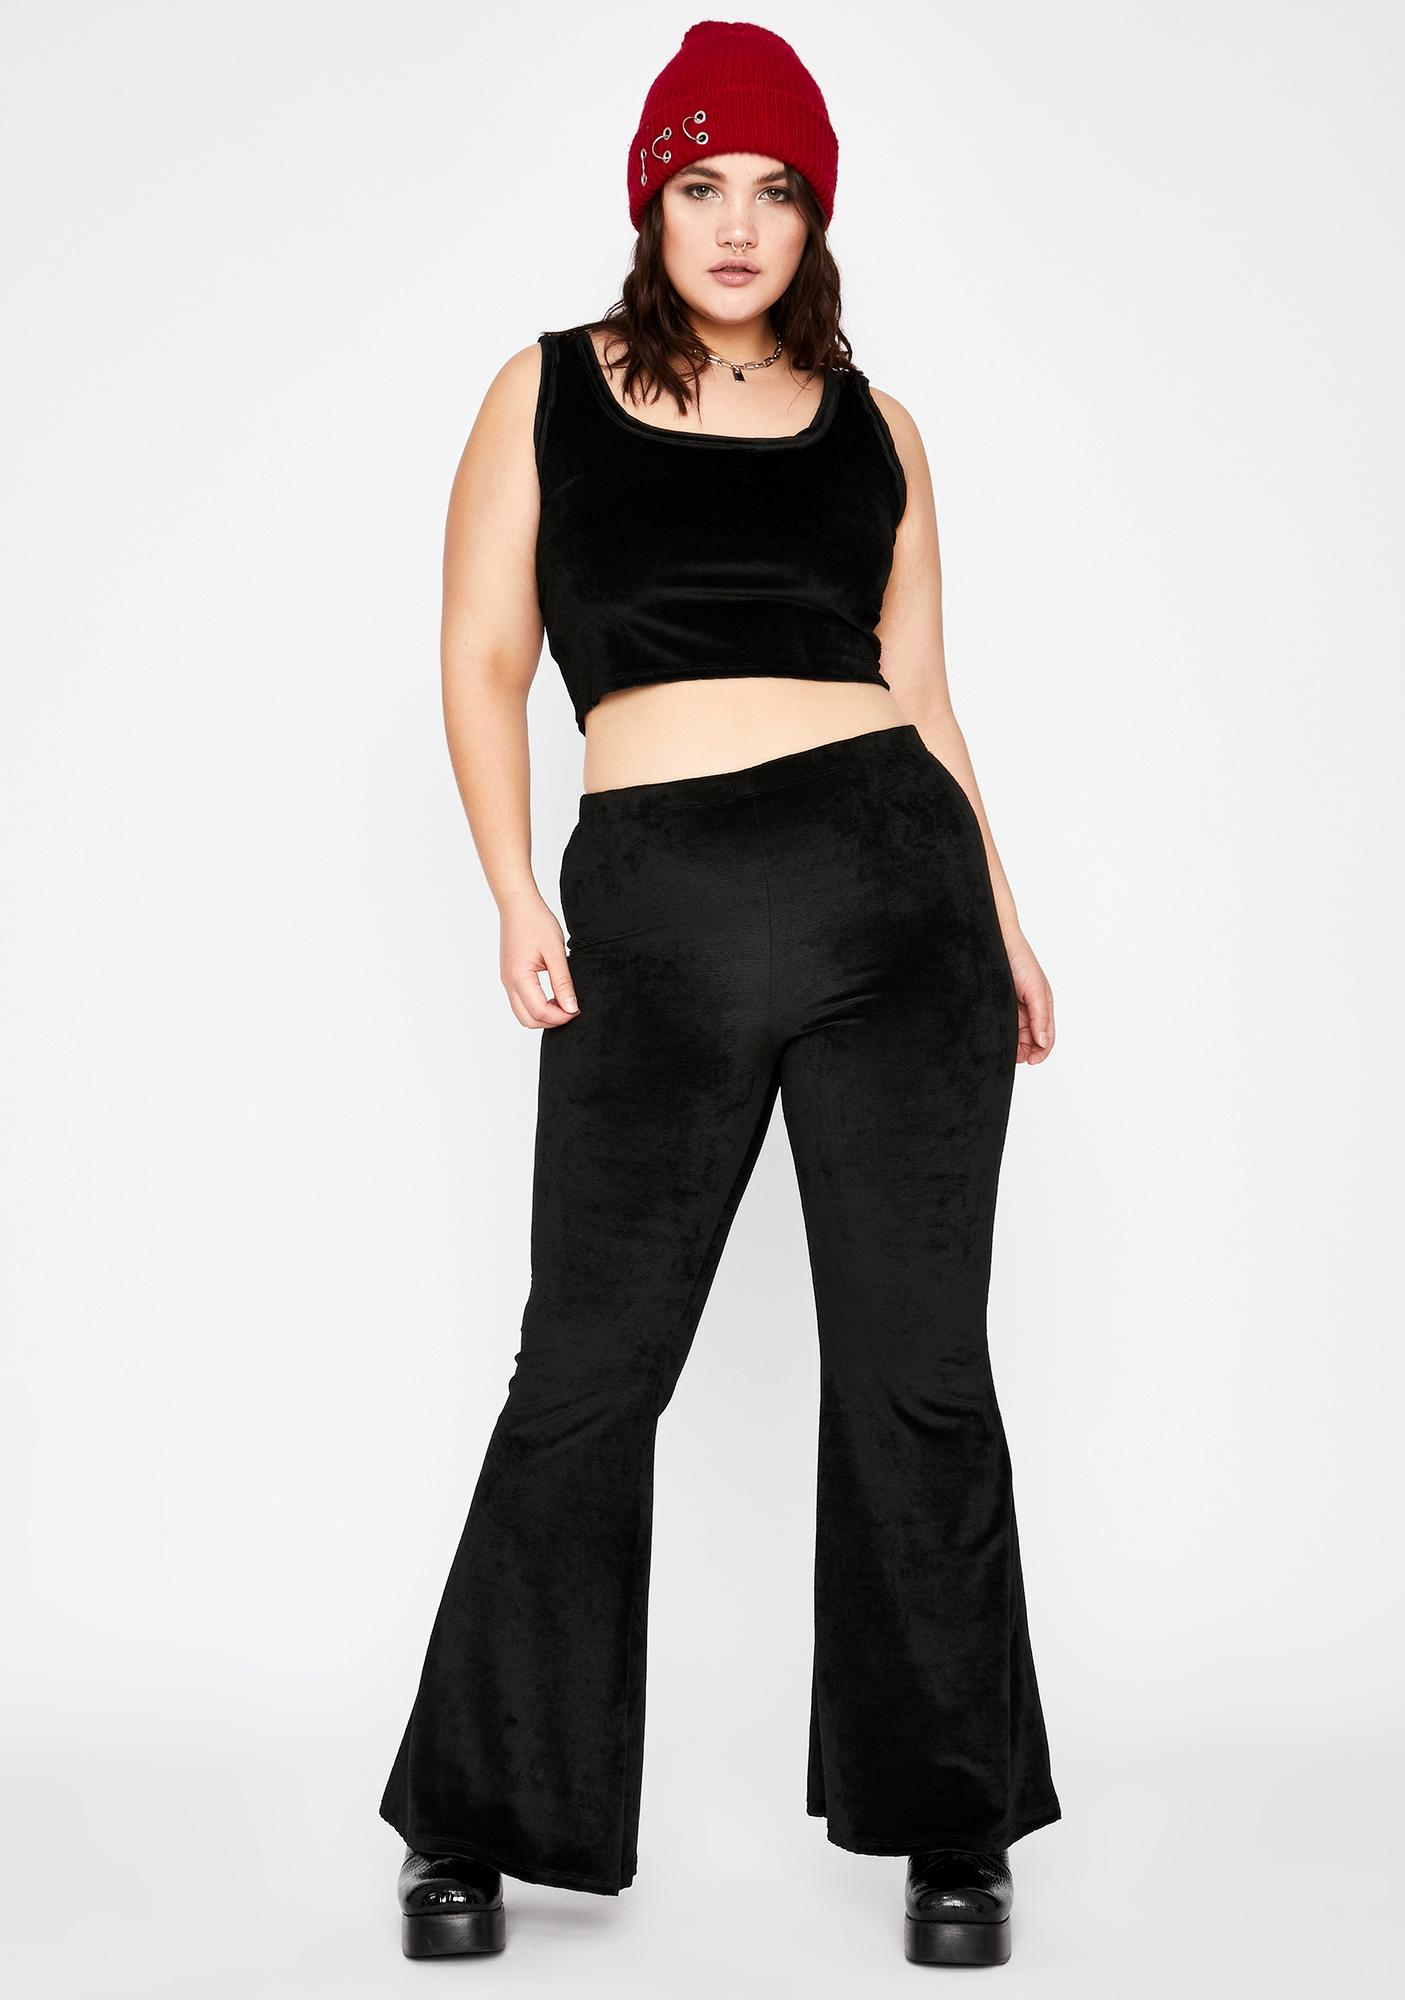 Lux Lonely Lover Pant Set